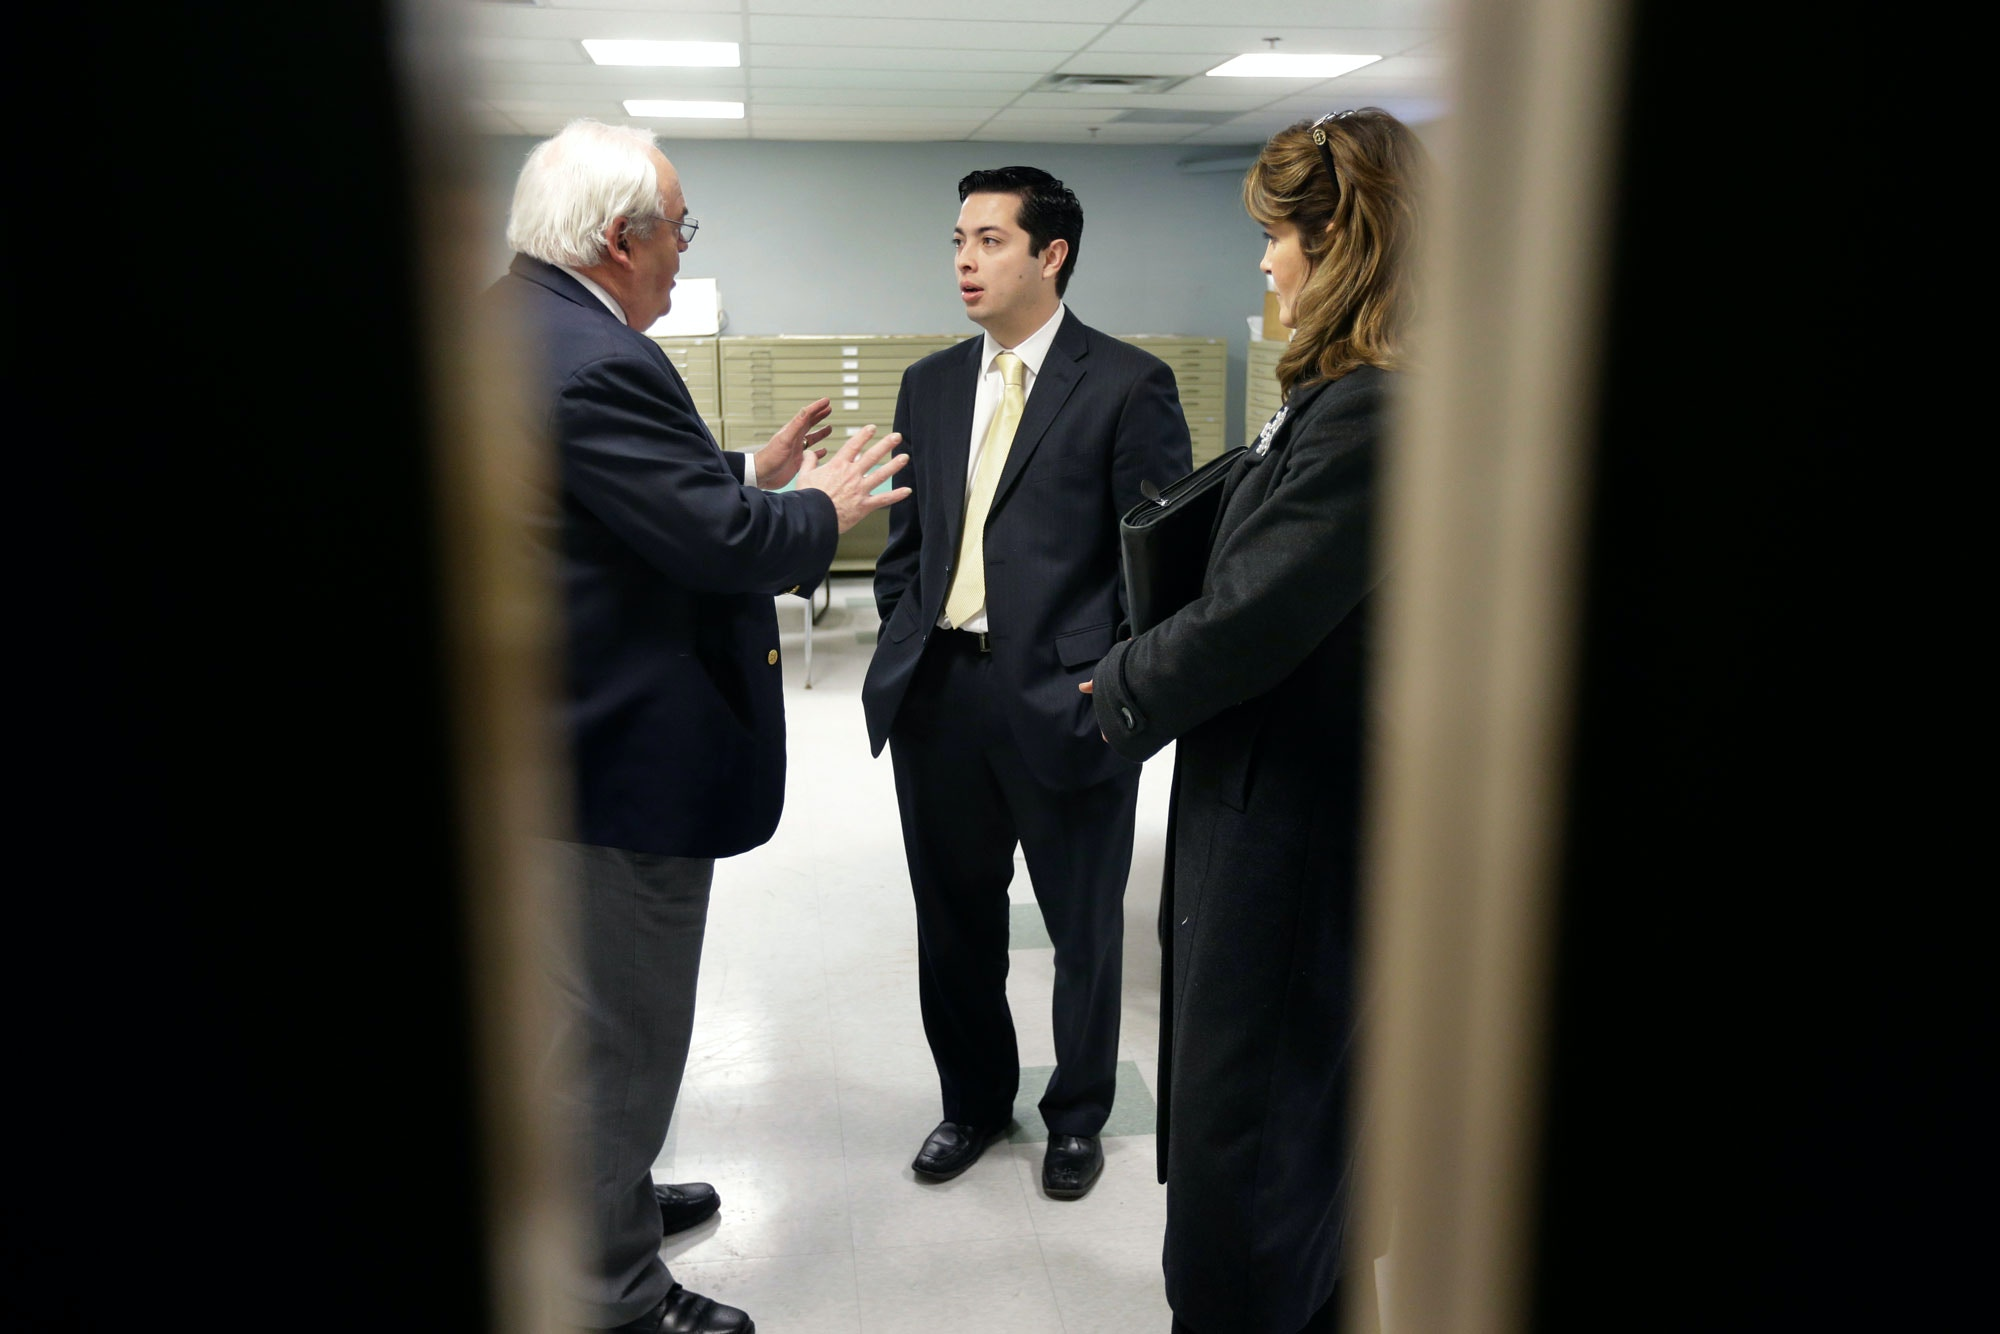 In this Jan. 29, 2013 photo Central Falls, R.I., Mayor James Diossa, center, speaks with President of the Northern Rhode Island Chamber of Commerce John Gregory, left, and Director of Regulatory Reform for R.I., Leslie Taito during a meeting at the Public Works building in Central Falls.  Diossa, the newly elected mayor of Central Falls, Rhode Island, is from a Colombian immigrant family and is the hope of a mainly Latino town that wants to move forward after being marred by corruption and bankruptcy. (AP Photo/Steven Senne)